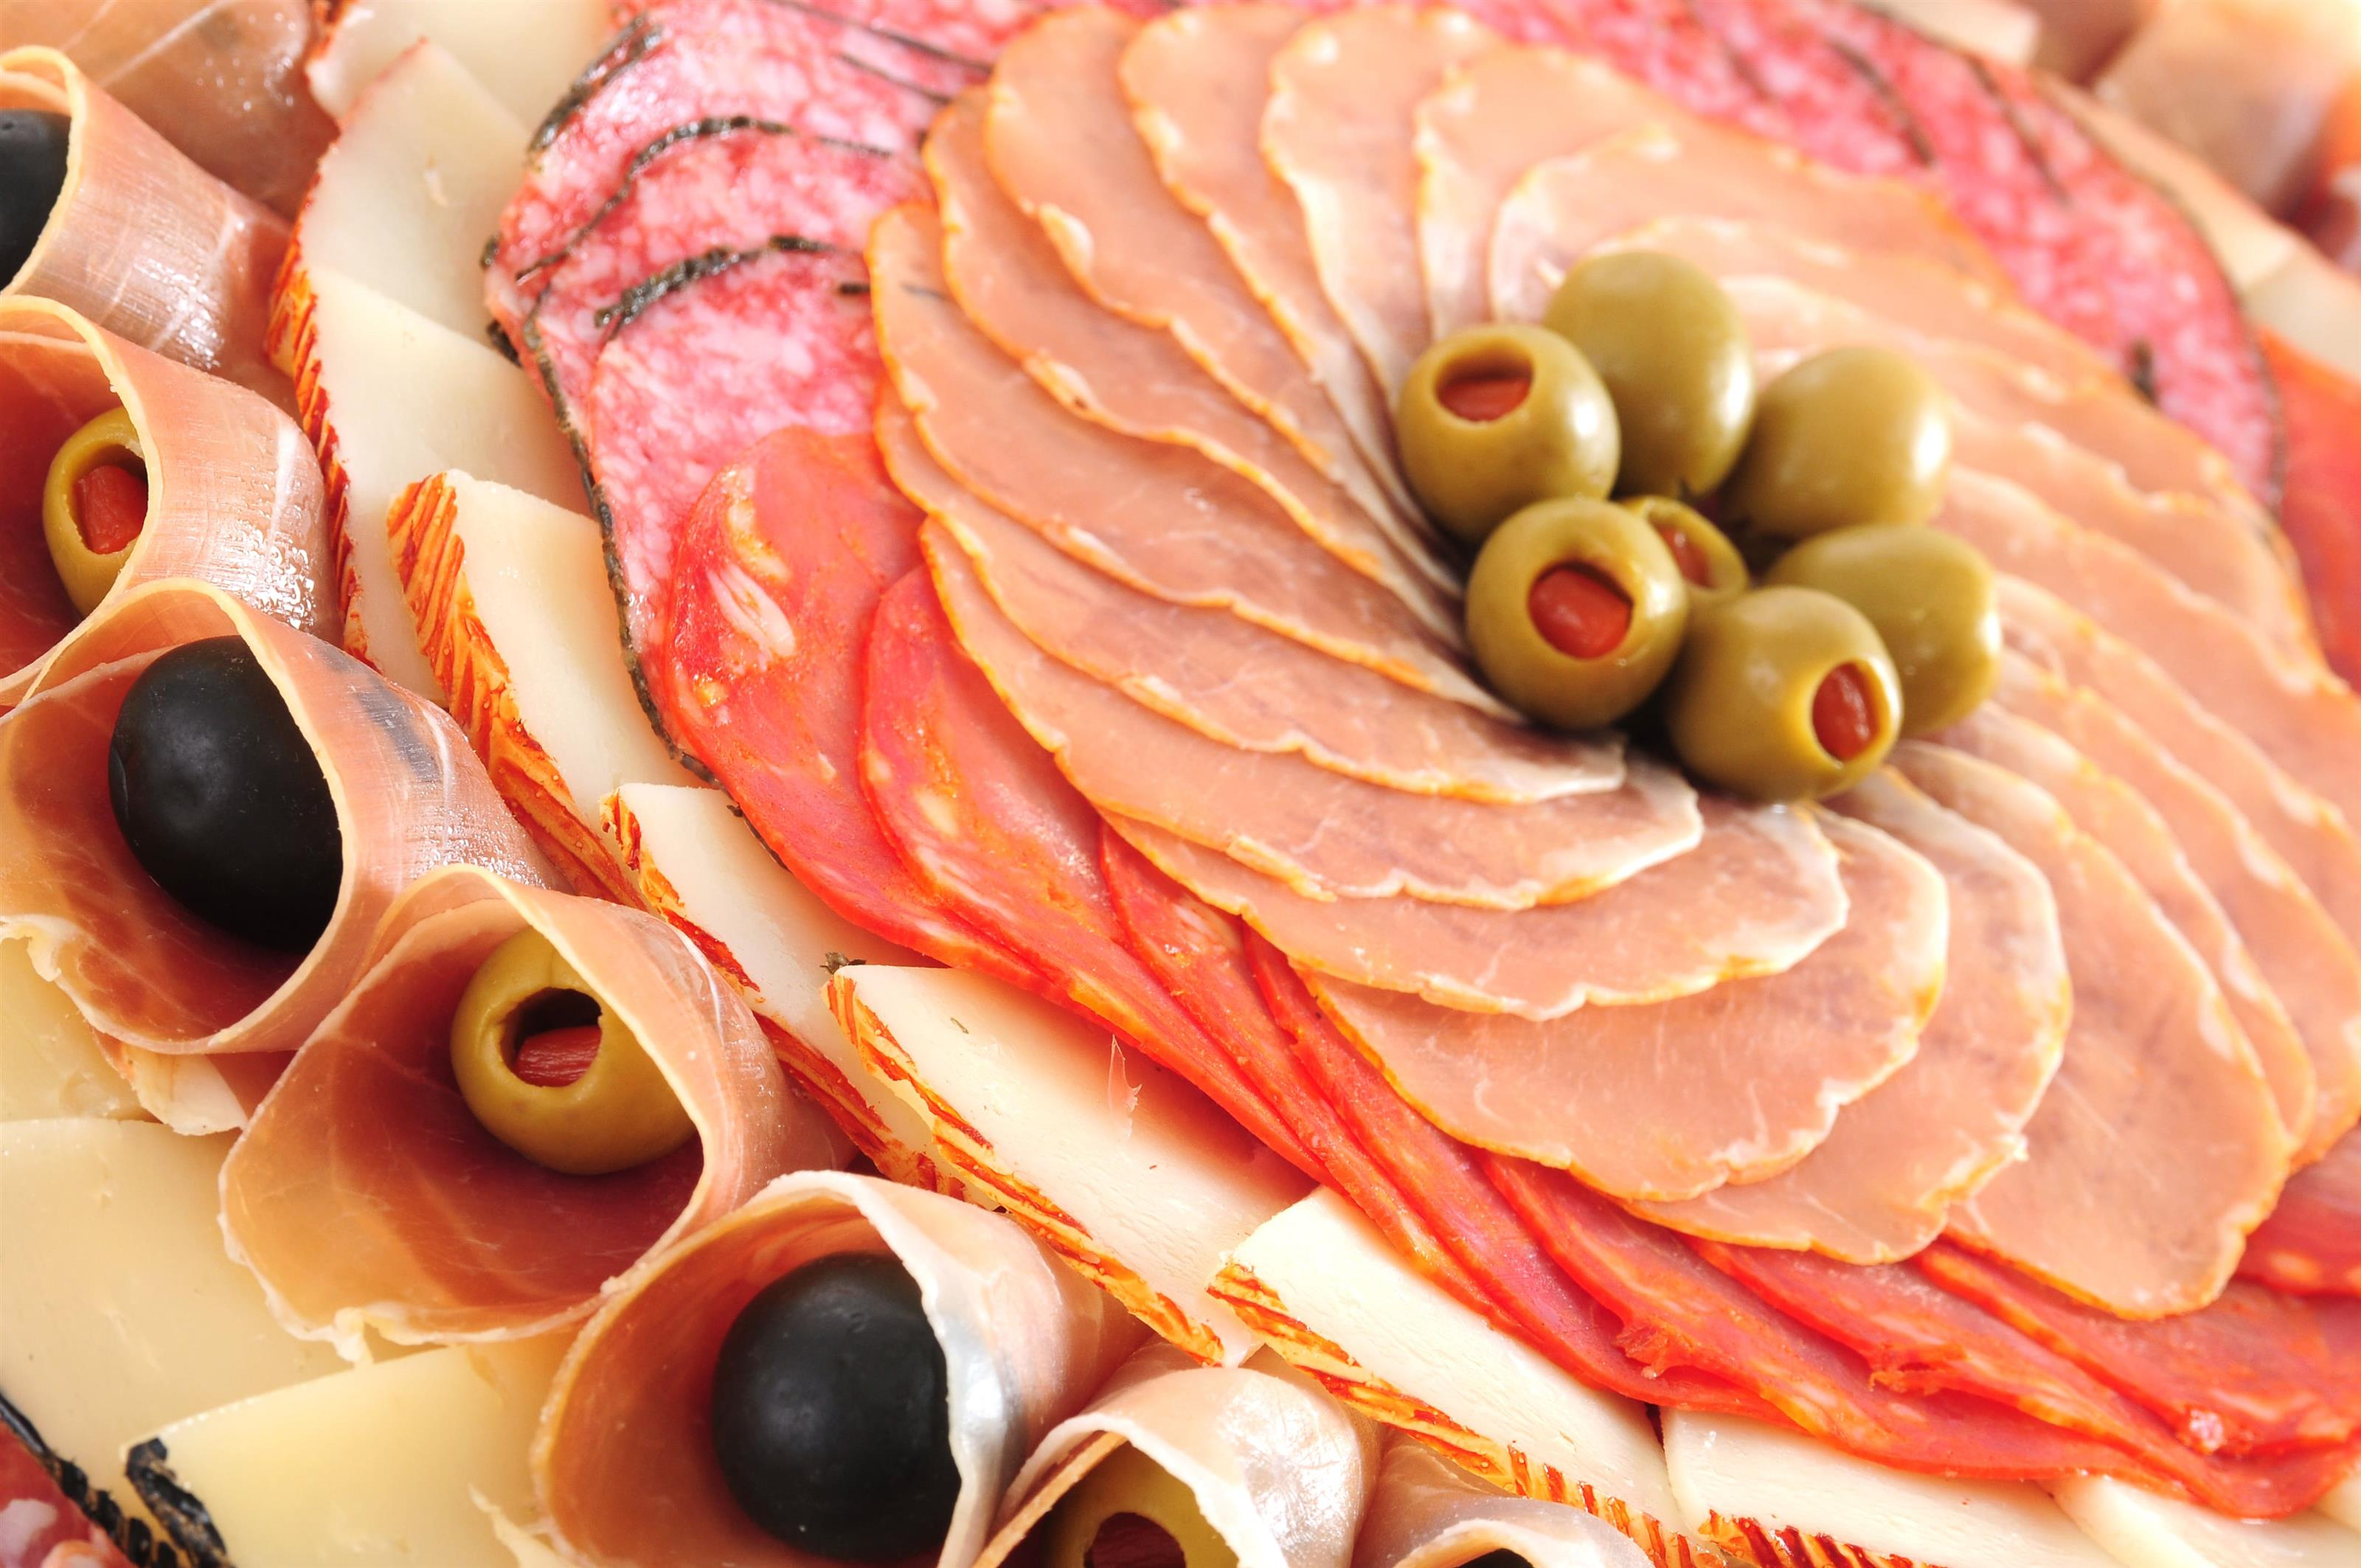 Spread of italian meats with olives.